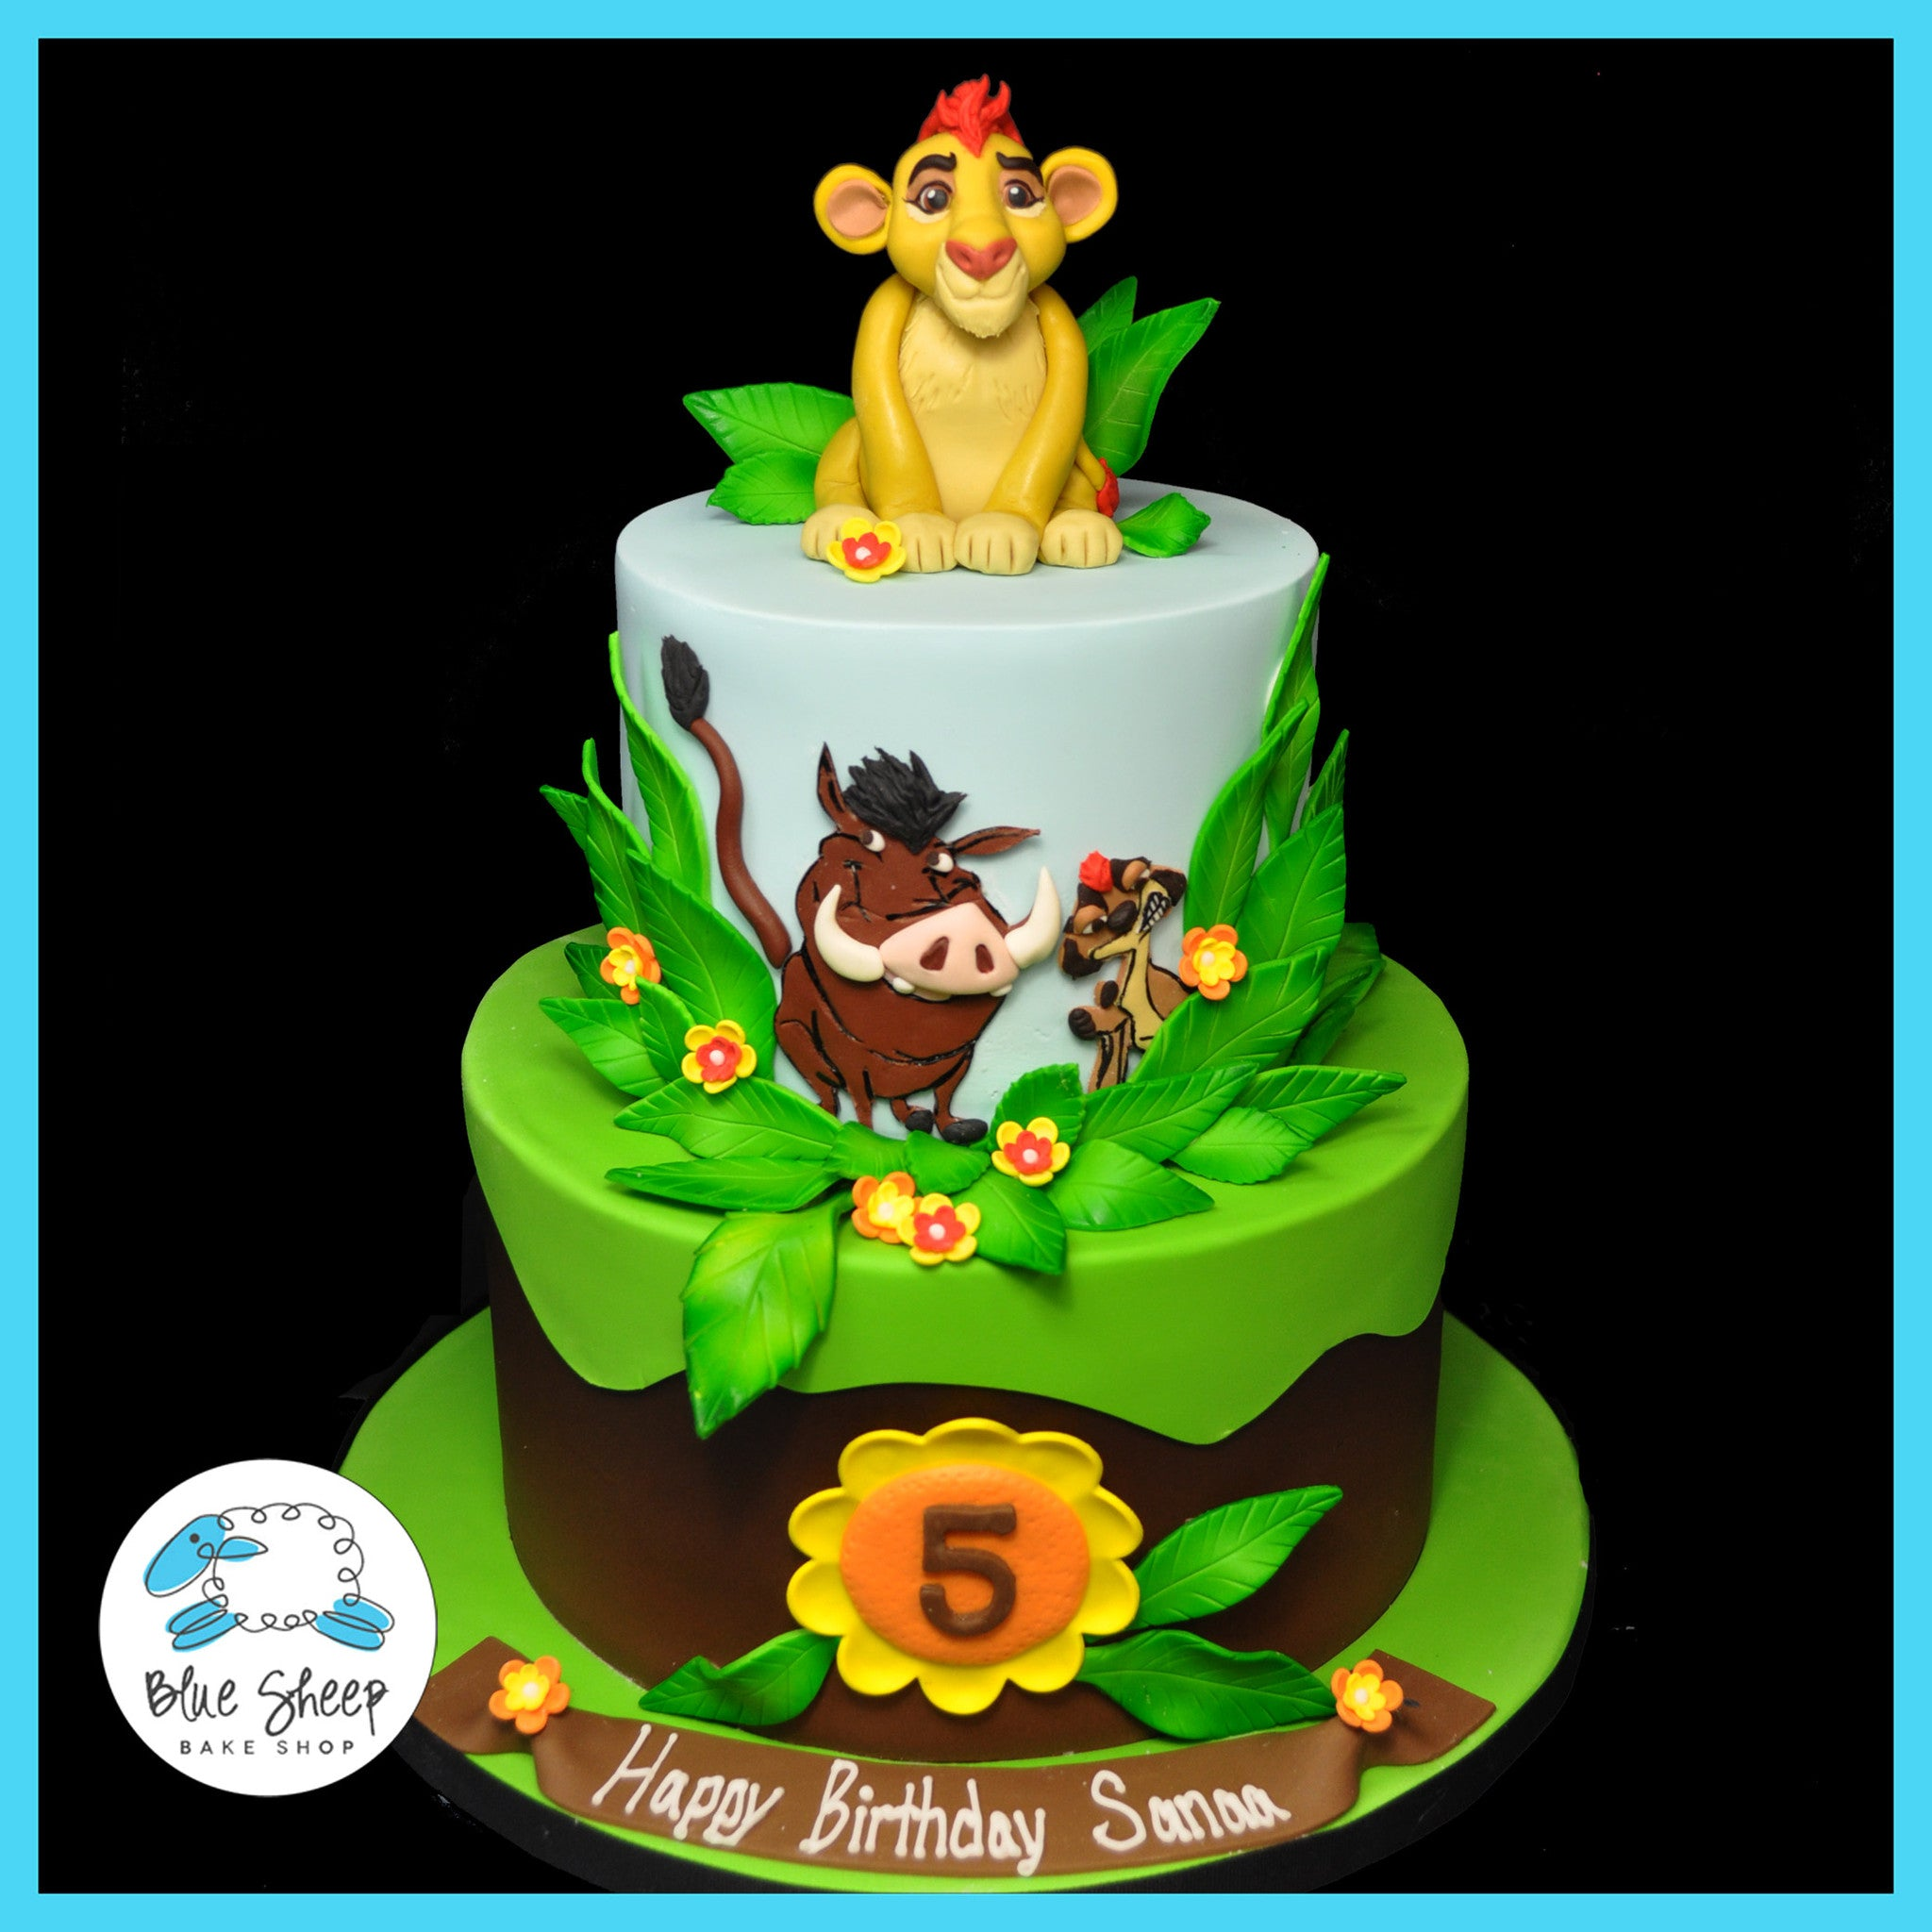 Outstanding Lion King Birthday Cake Blue Sheep Bake Shop Birthday Cards Printable Trancafe Filternl